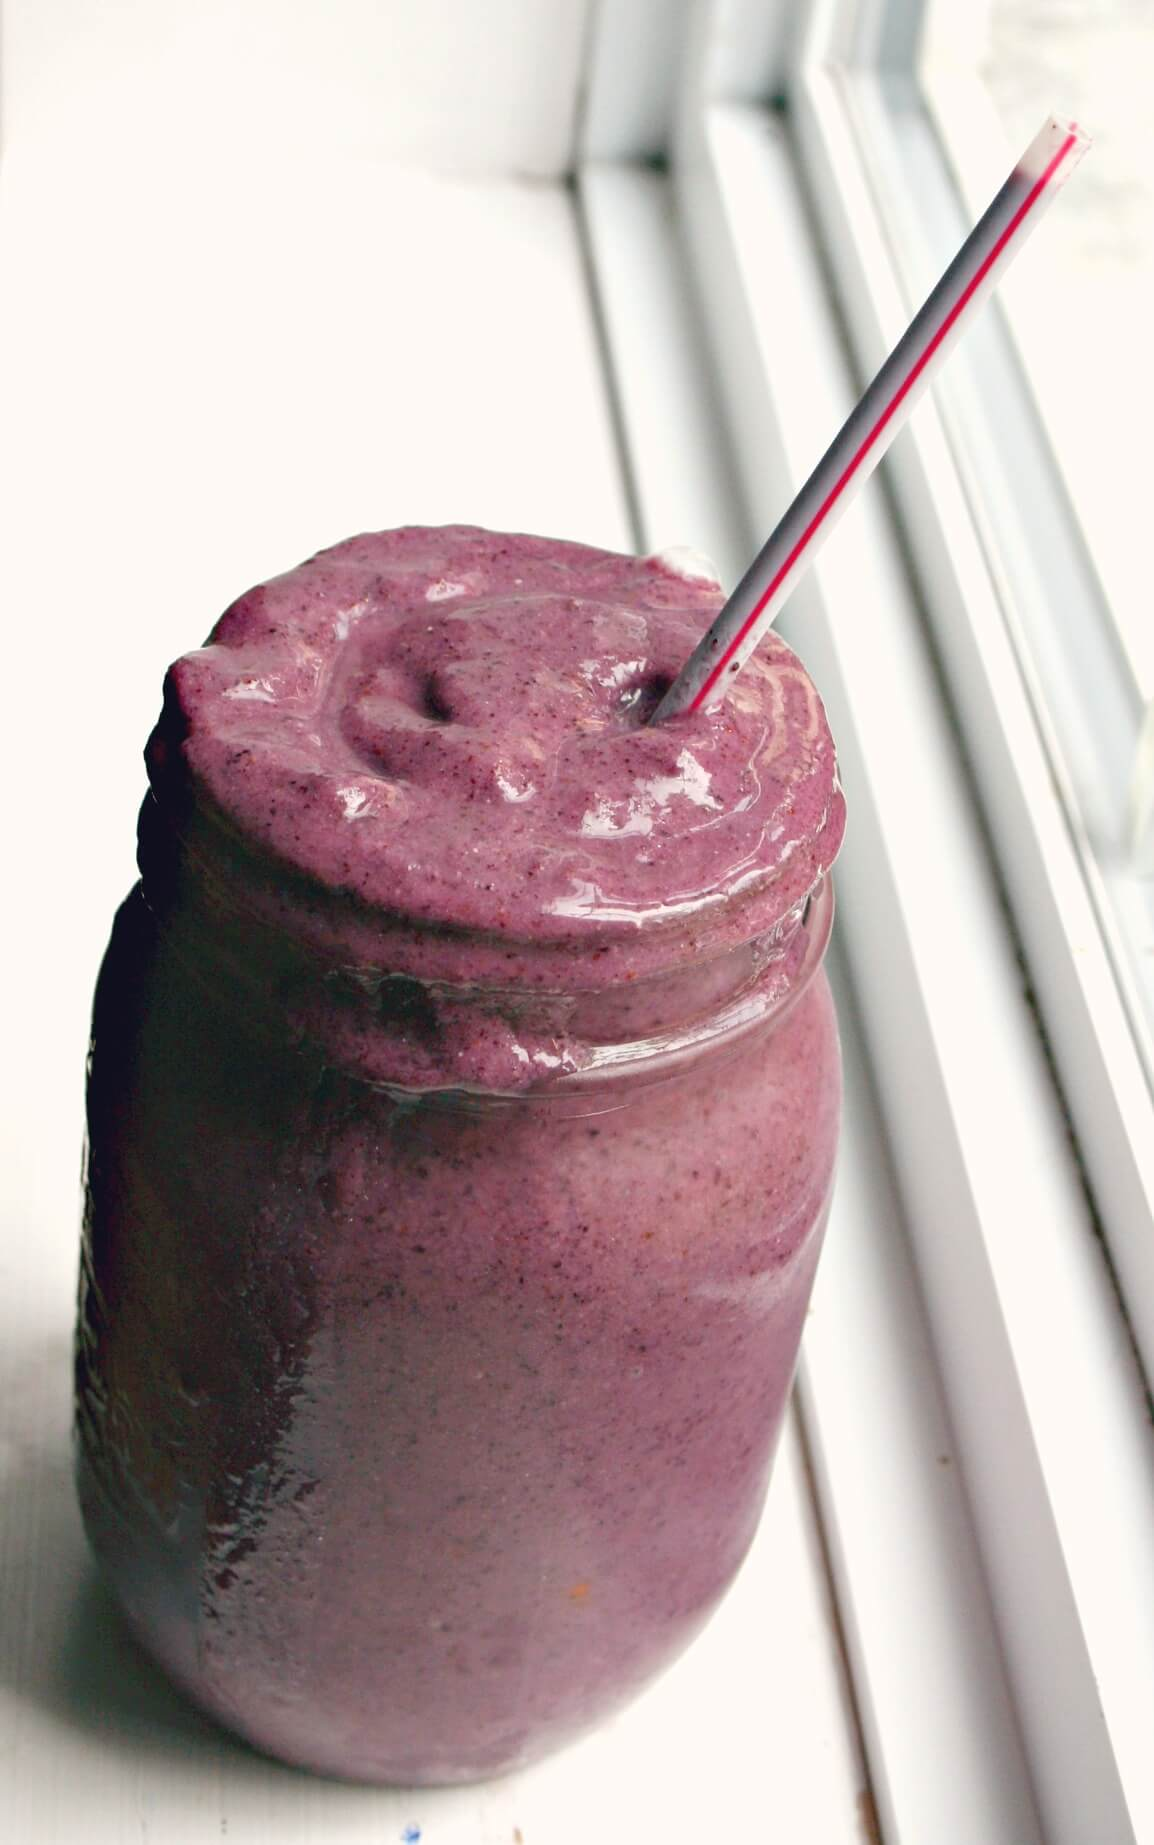 Blueberry and Kiwi Smoothie